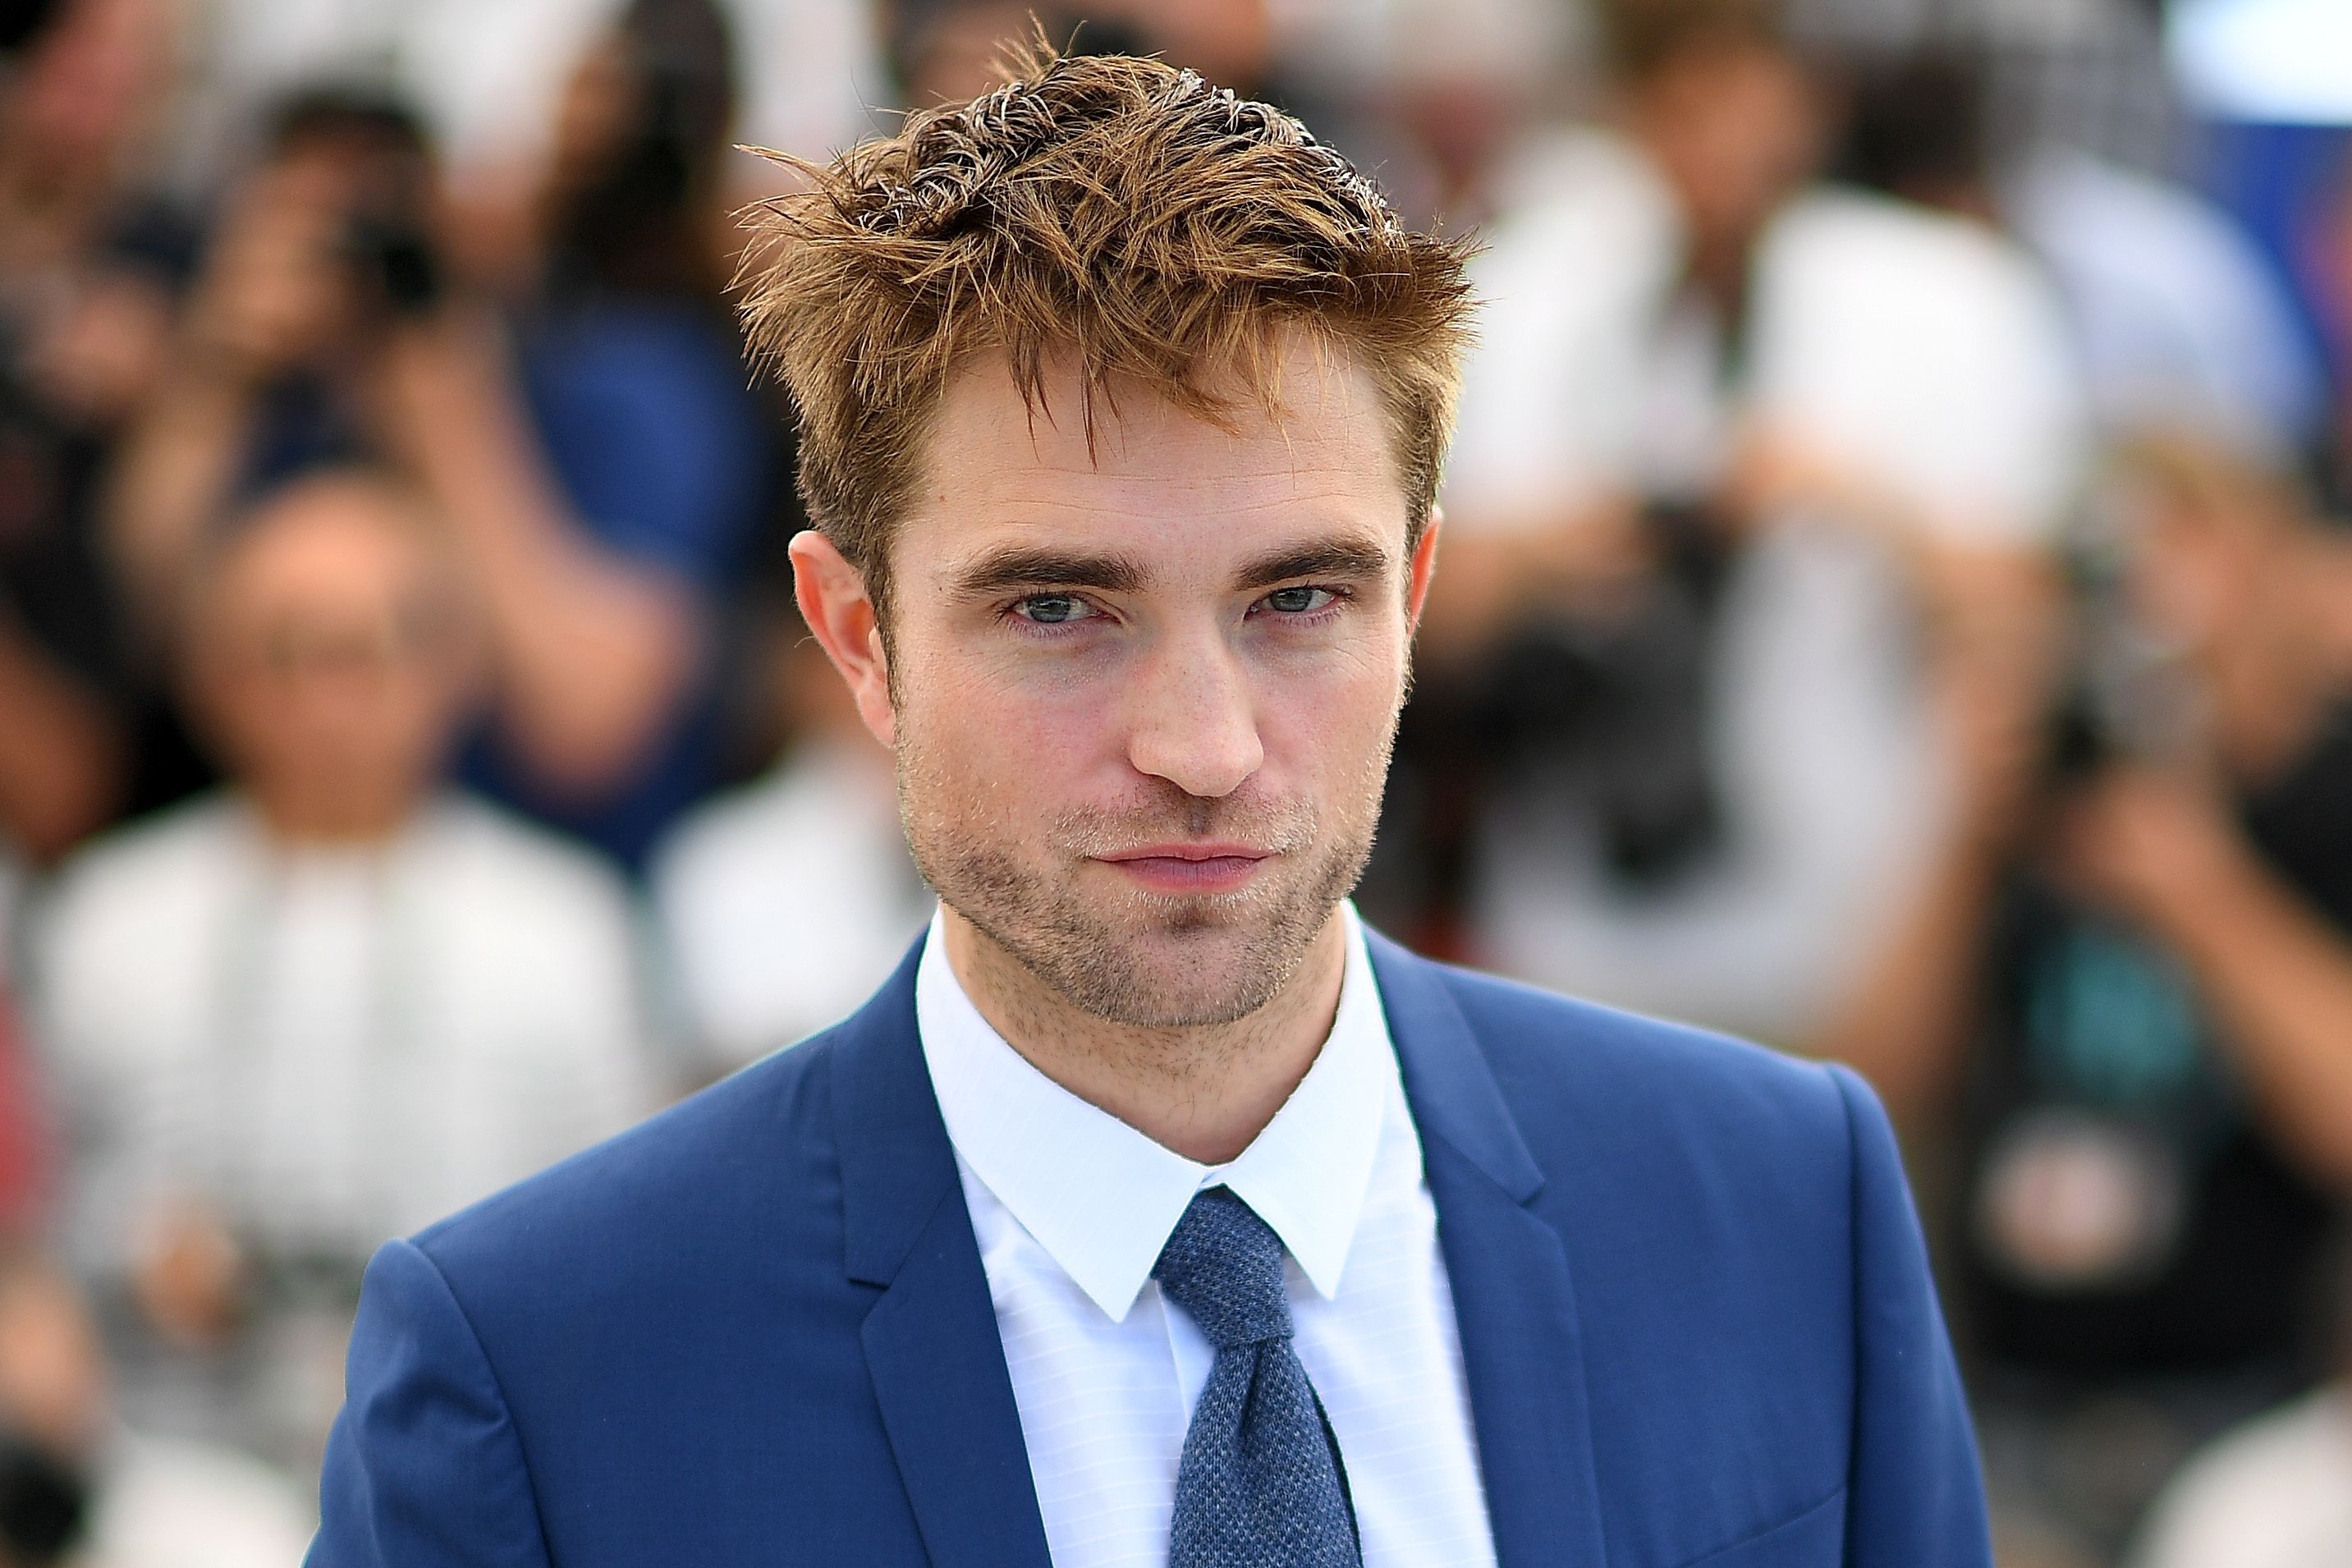 """Robert Pattinson Reveals These Funny Facts to Get Into Character for """"The Lighthouse"""""""